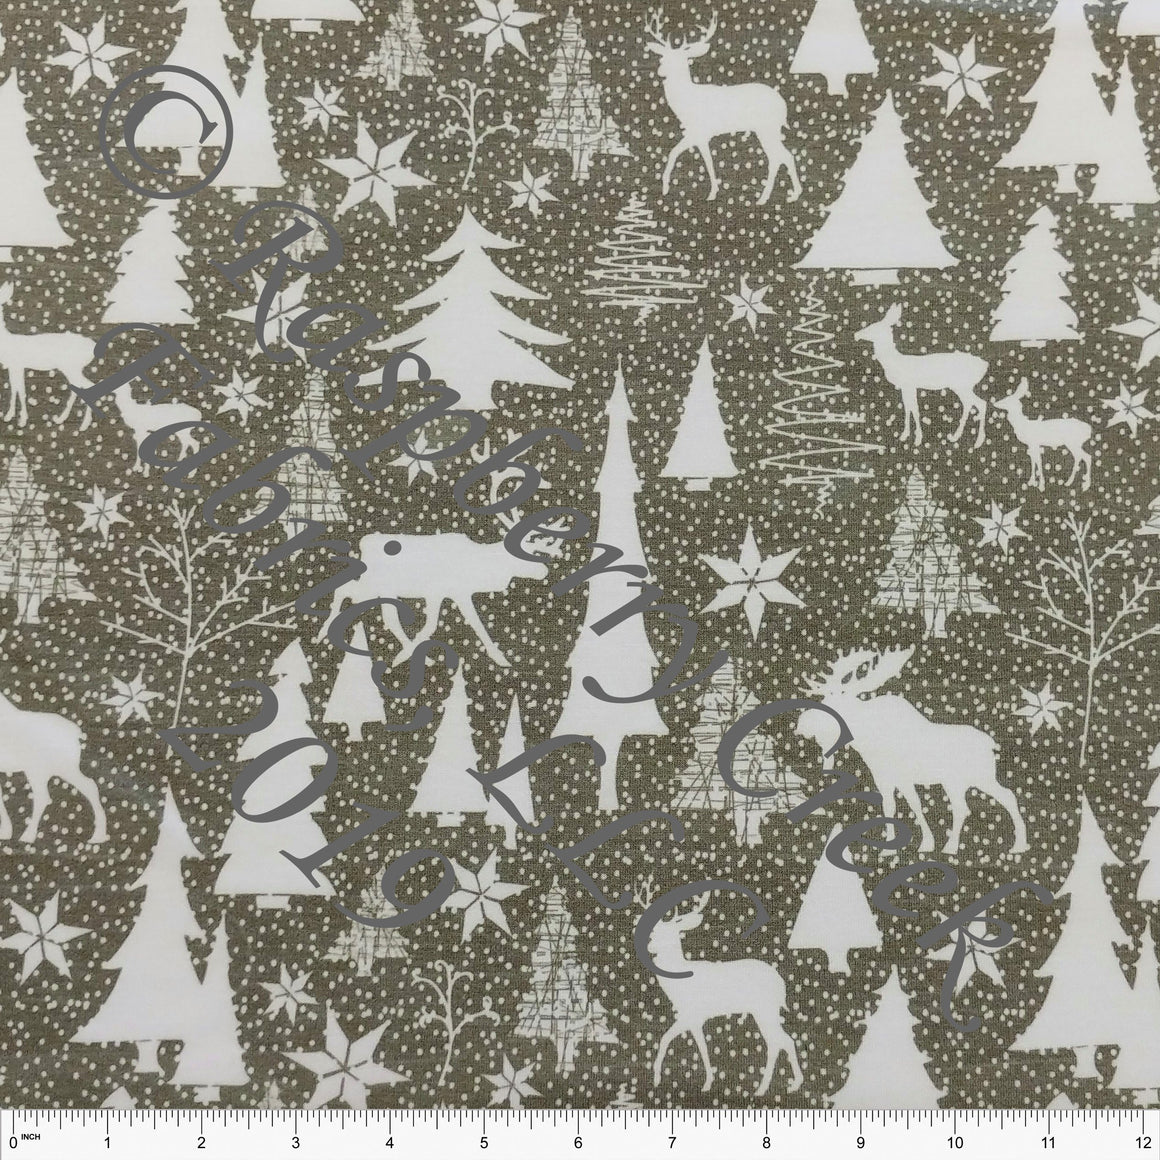 Olive and White Winter Wonderland French Terry Fleece Sweatshirt Knit Fabric, Elise Peterson for CLUB Fabrics - Raspberry Creek Fabrics